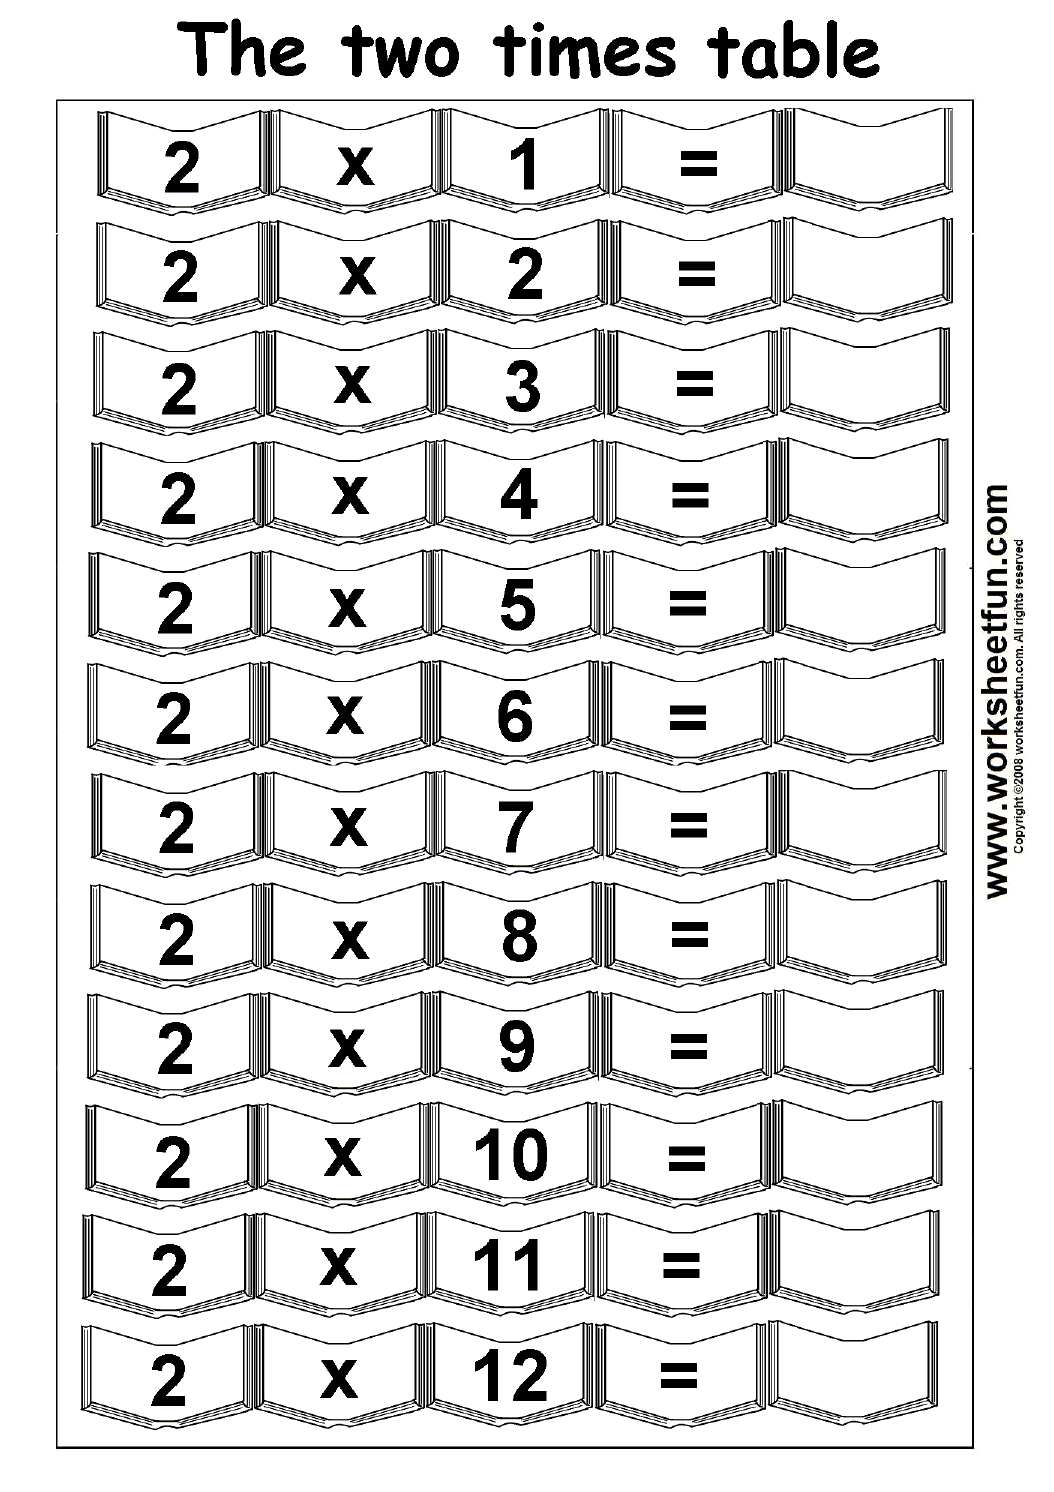 Times table 3 times table free printable worksheets worksheetfun multiplication times tables worksheets 2 3 4 5 times tables four robcynllc Images